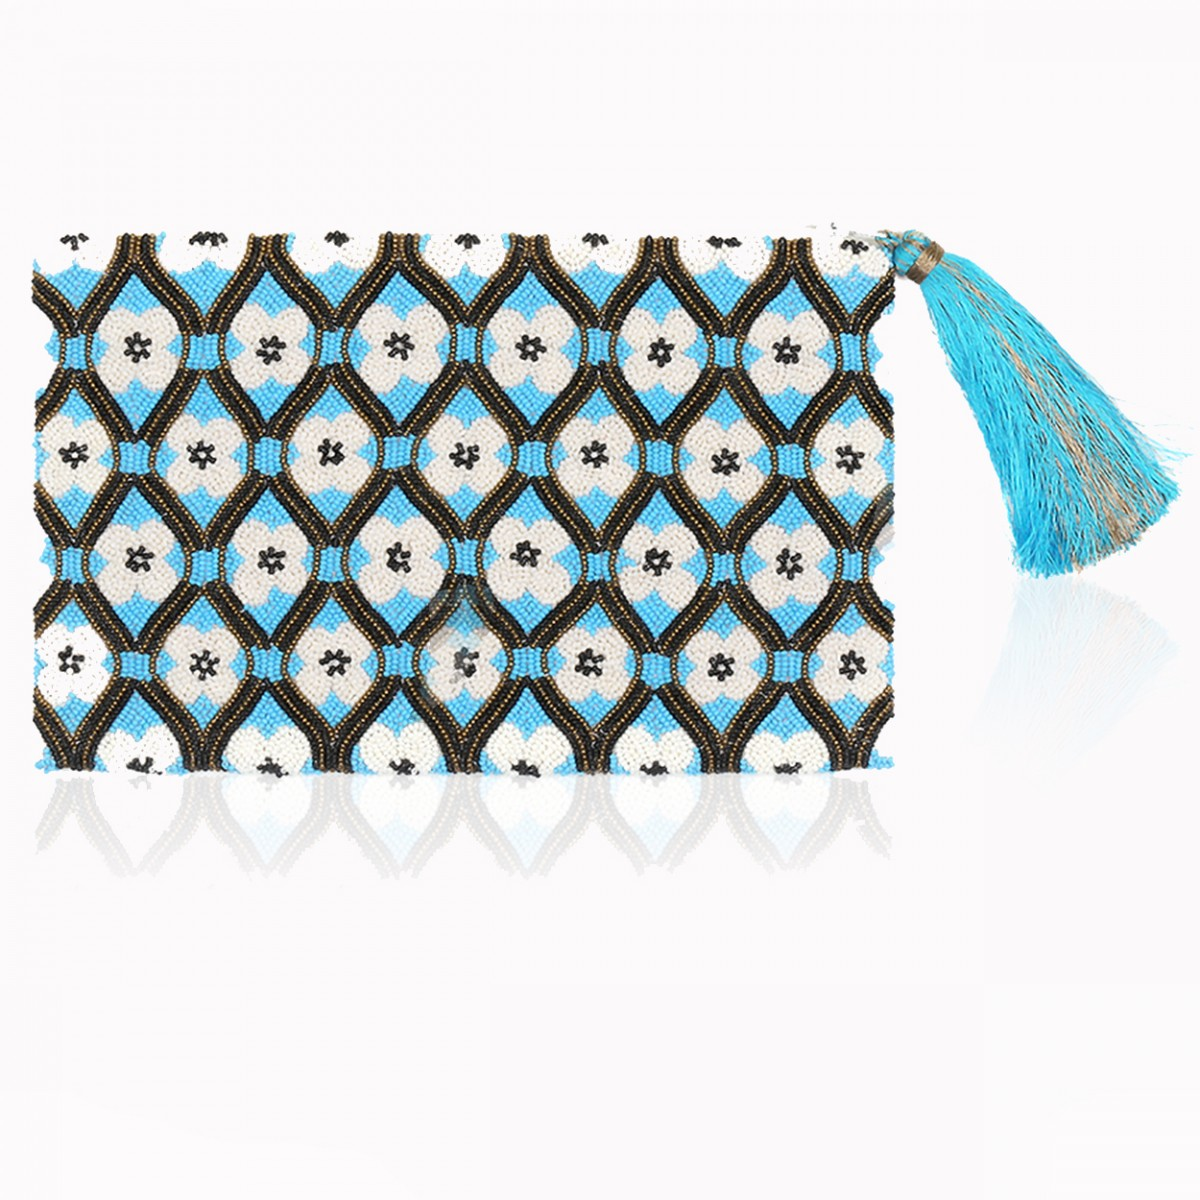 Turquoise beaded flower evening clutch bag